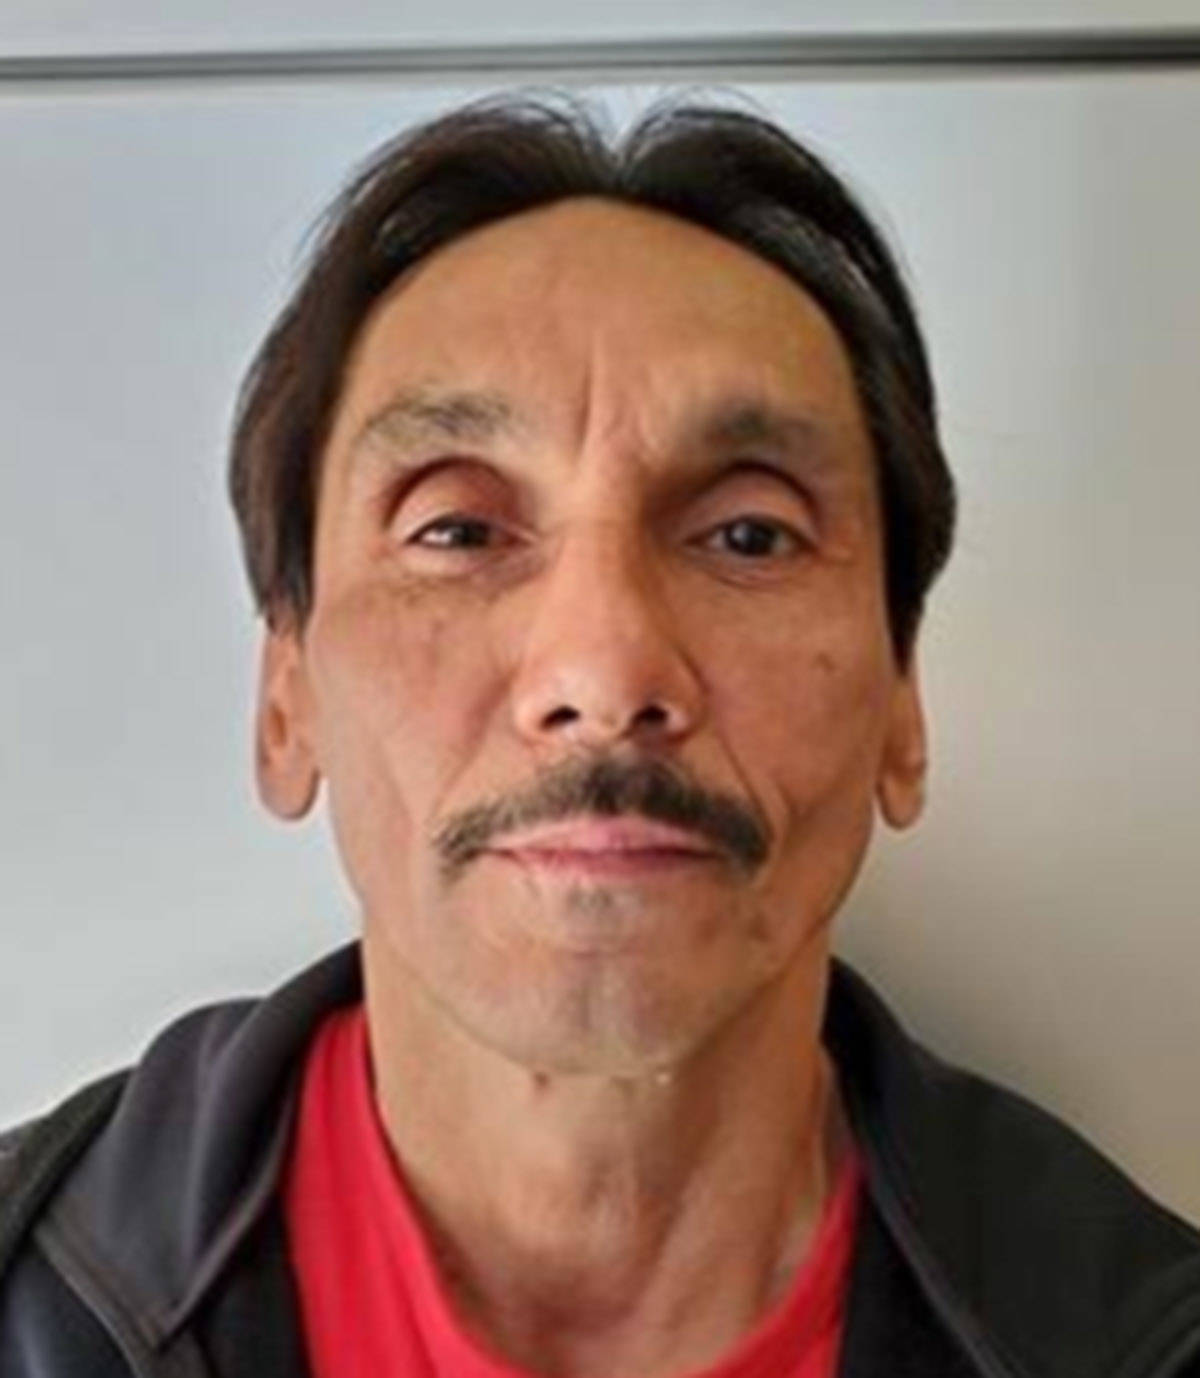 """Name: KIRTON, Kenneth Age: 54 Height: 5'3"""" ft Weight: 189 lbs Hair: Black Eyes: Brown Wanted: Canada Wide Warrant – Breach of CCRA Warrant in effect: June 30, 2021 Parole Jurisdiction: Vancouver, BC"""